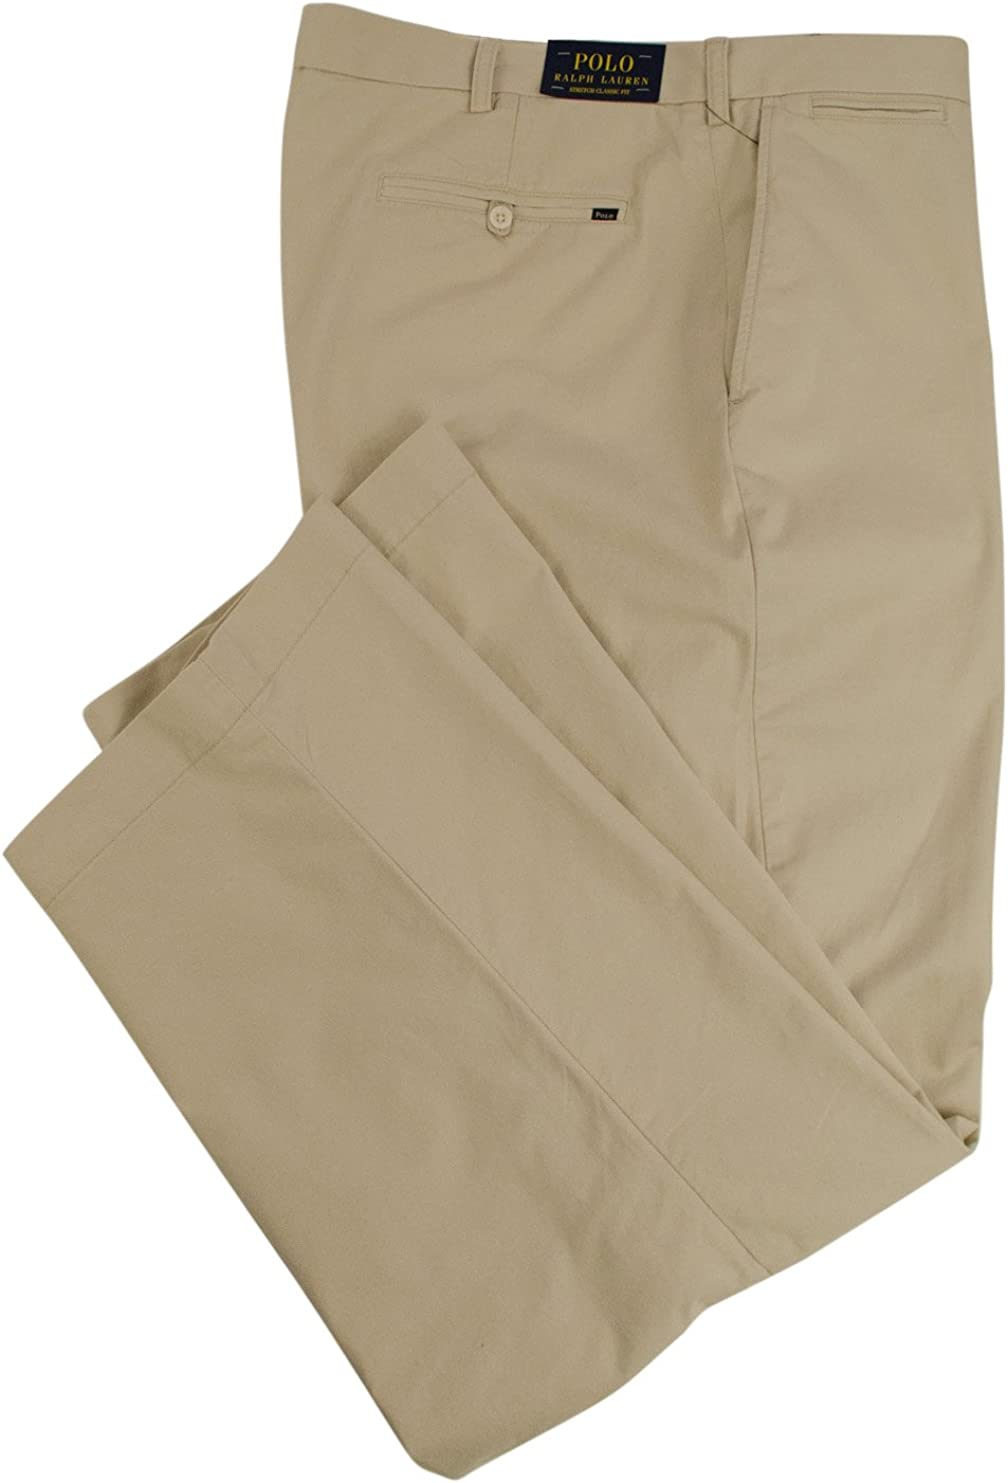 Polo Ralph Lauren Men's Big and Tall Classic Fit Stretch Chino Pants